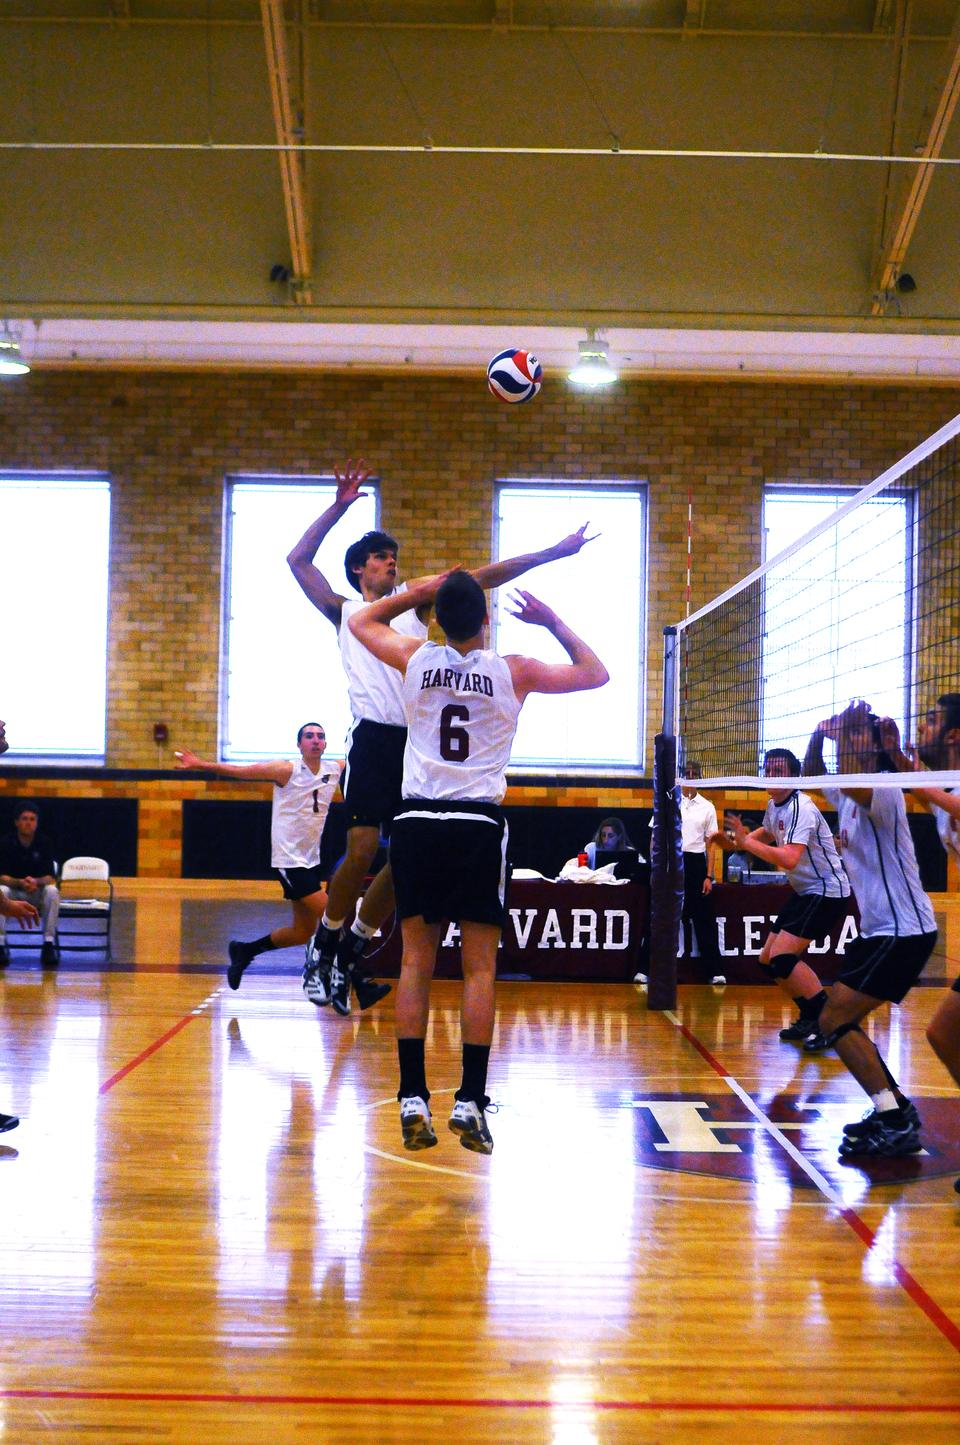 The men's volleyball team, shown here in earlier action, suffered a 3-0 defeat at the hands of Penn State to fall to second in the EIVA.